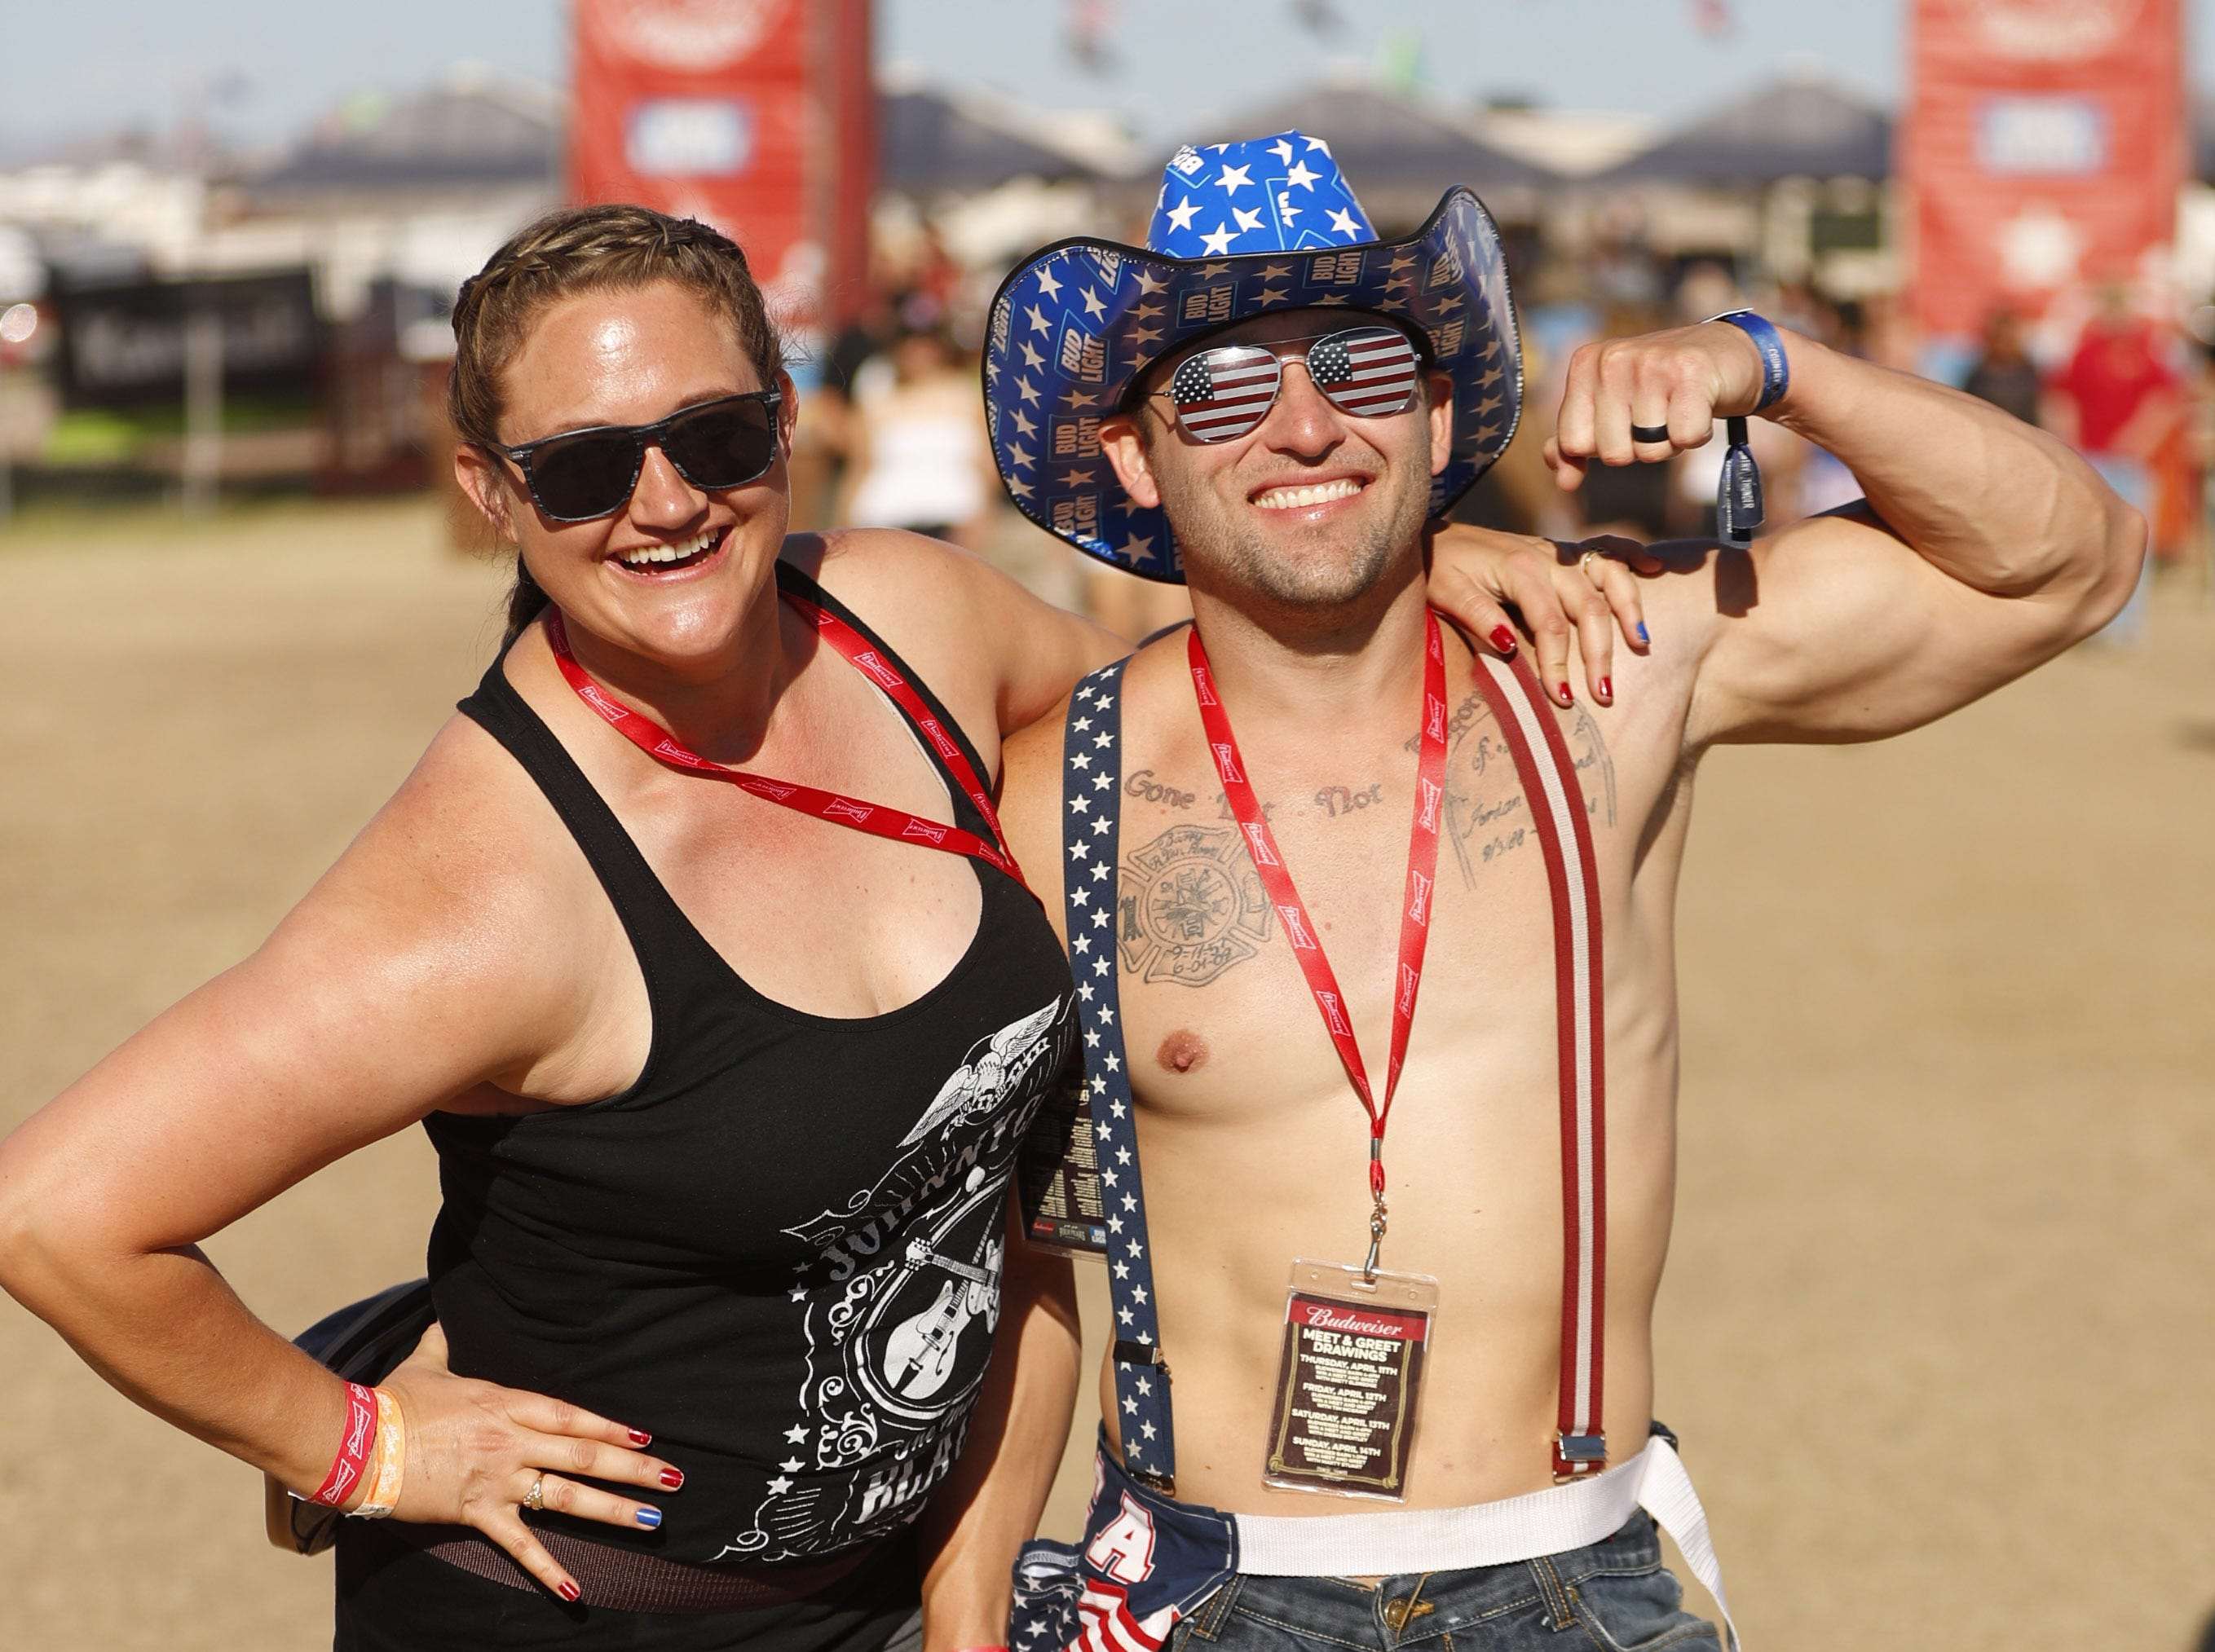 Nikki Fowler and Josh Fowler pose for a picture during Country Thunder in Florence, Ariz. on Saturday, April 13, 2019.